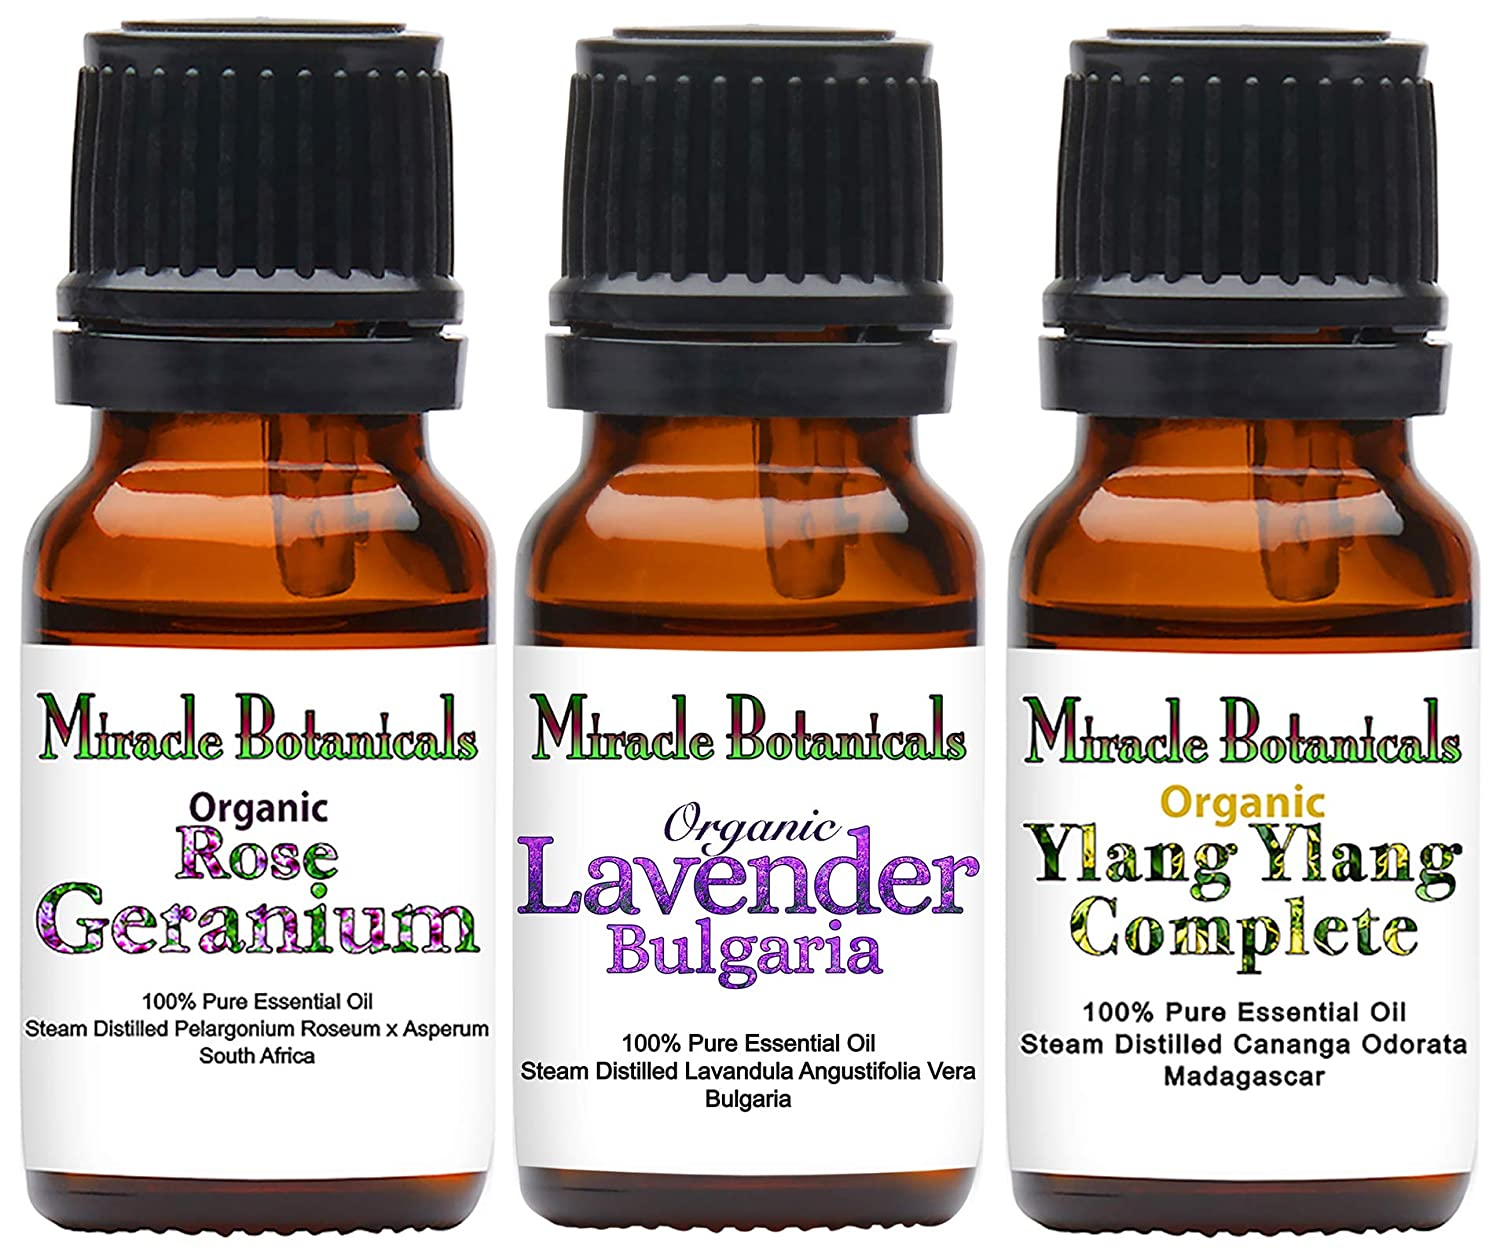 Miracle Botanicals Organic Floral Trio Oil Sampler - Set of 3 100% Pure Therapeutic Grade Essential Oils of Lavender Bulgaria, Ylang Ylang Complete, and Rose Geranium - (3) 10ml